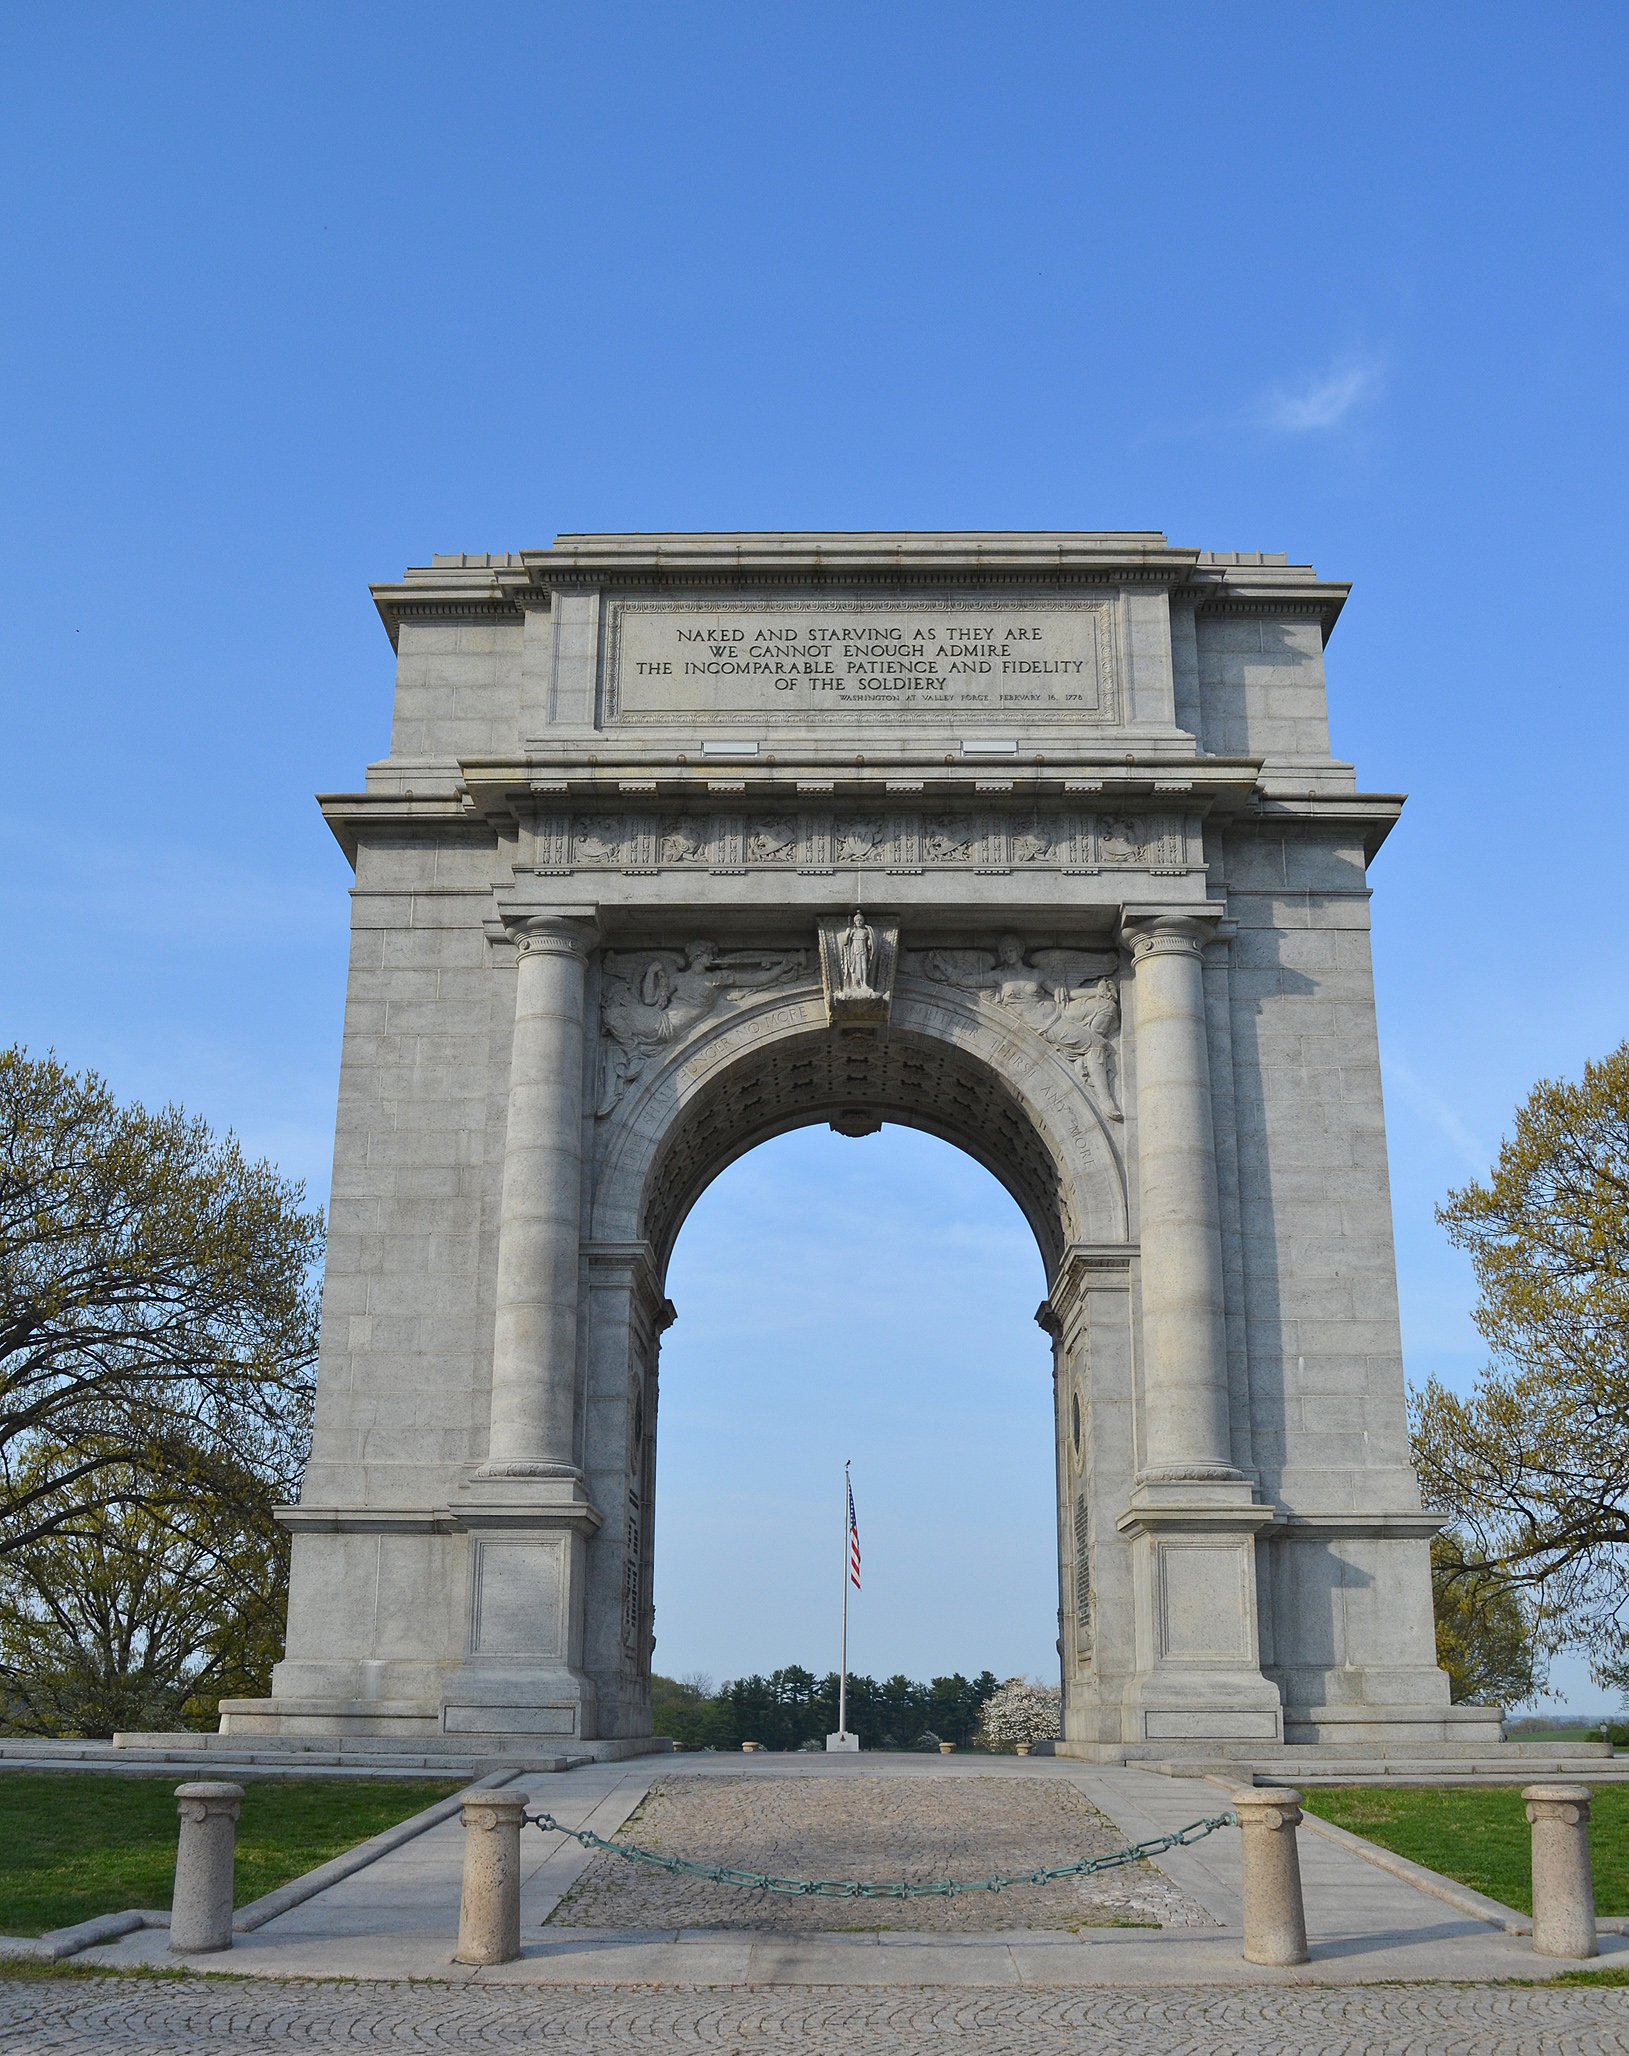 The National Memorial Arch in honor of the Continental Army is at Valley Forge. Photo taken on April 15, 2012.